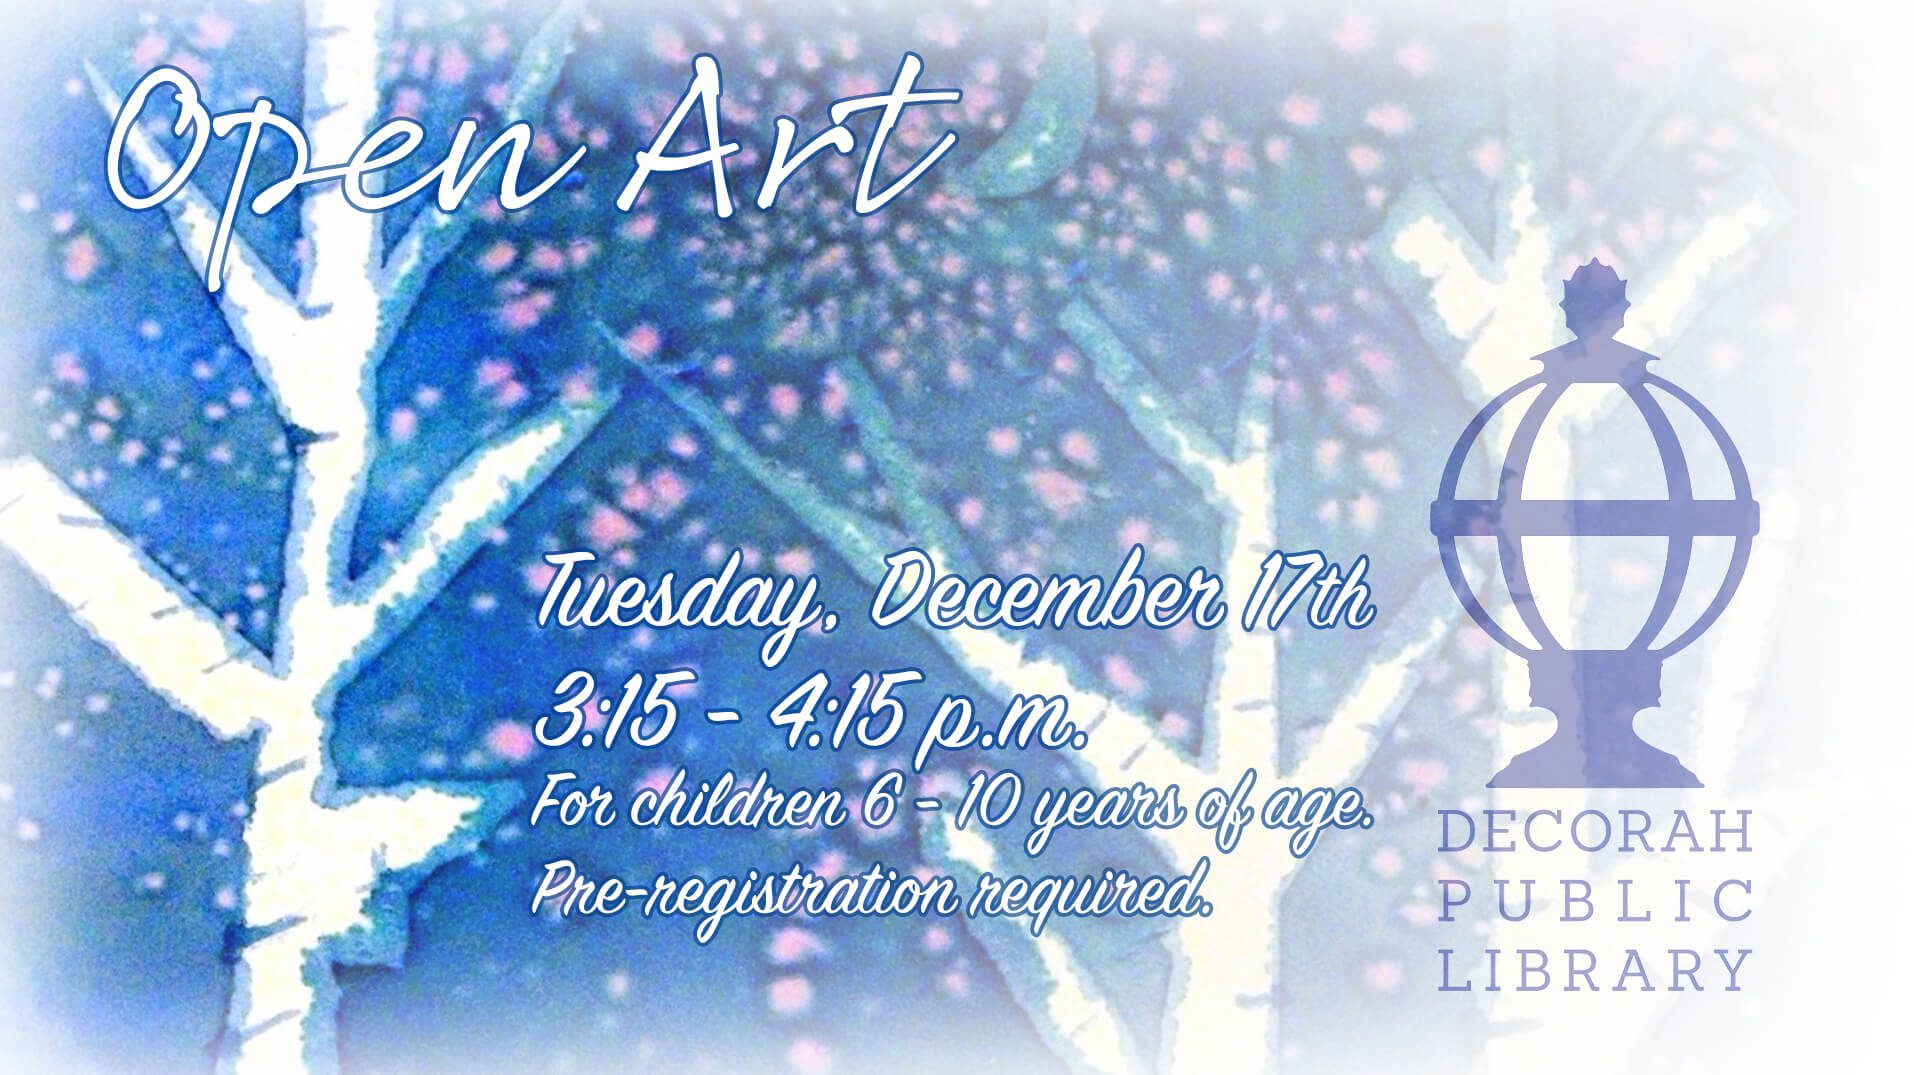 Open Art Dec 17